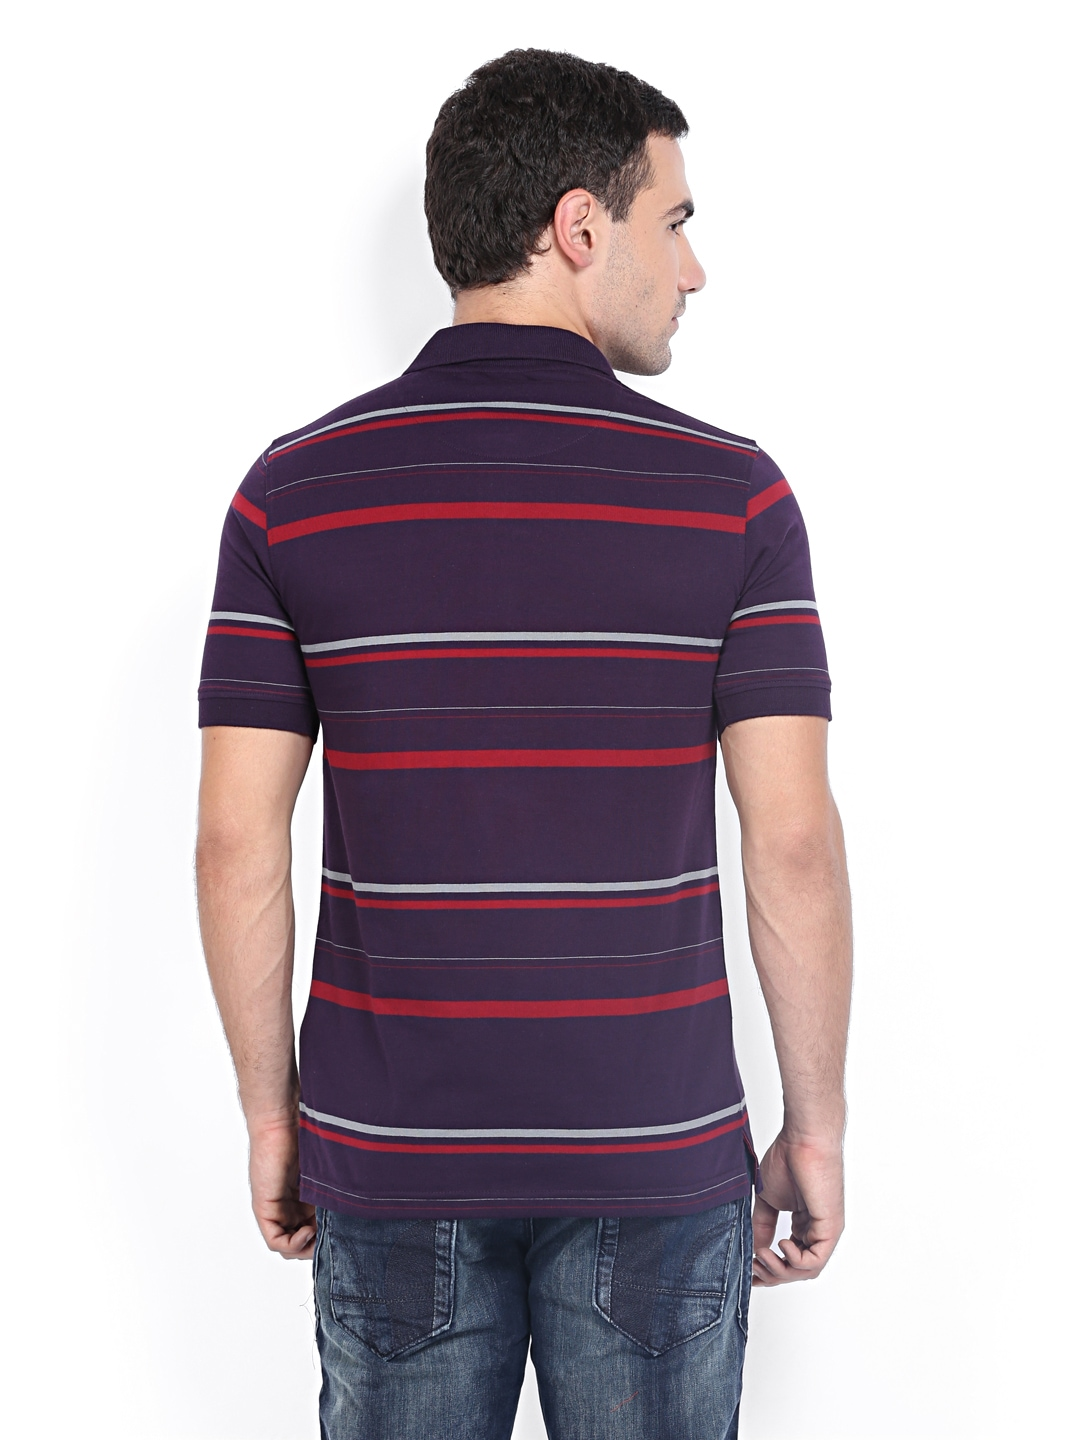 Myntra van heusen men purple red striped polo t shirt for Purple and black striped t shirt